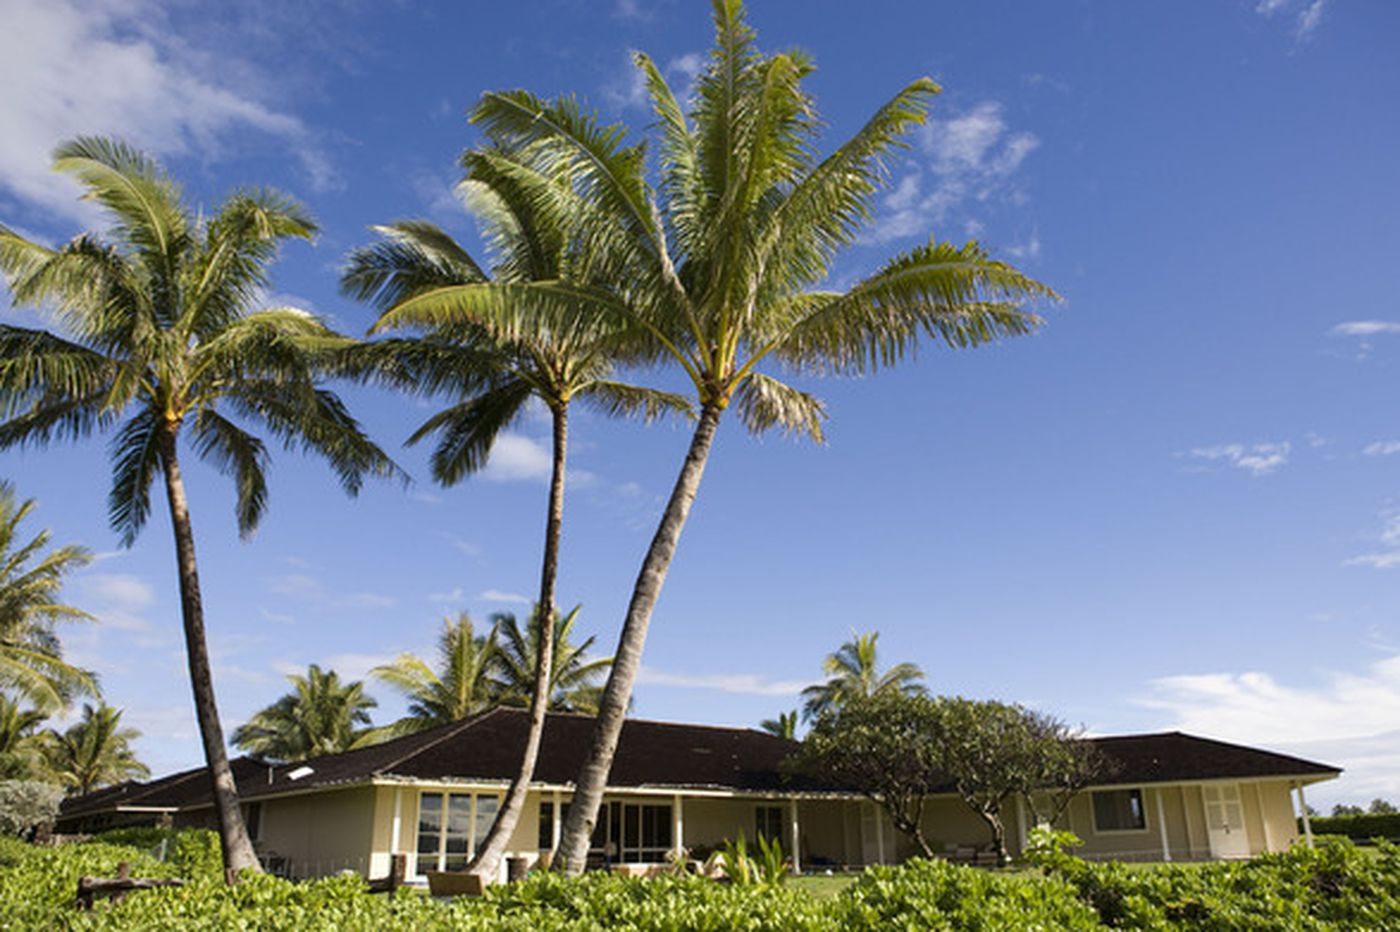 Obamas vacation at a quiet beach home in Hawaii